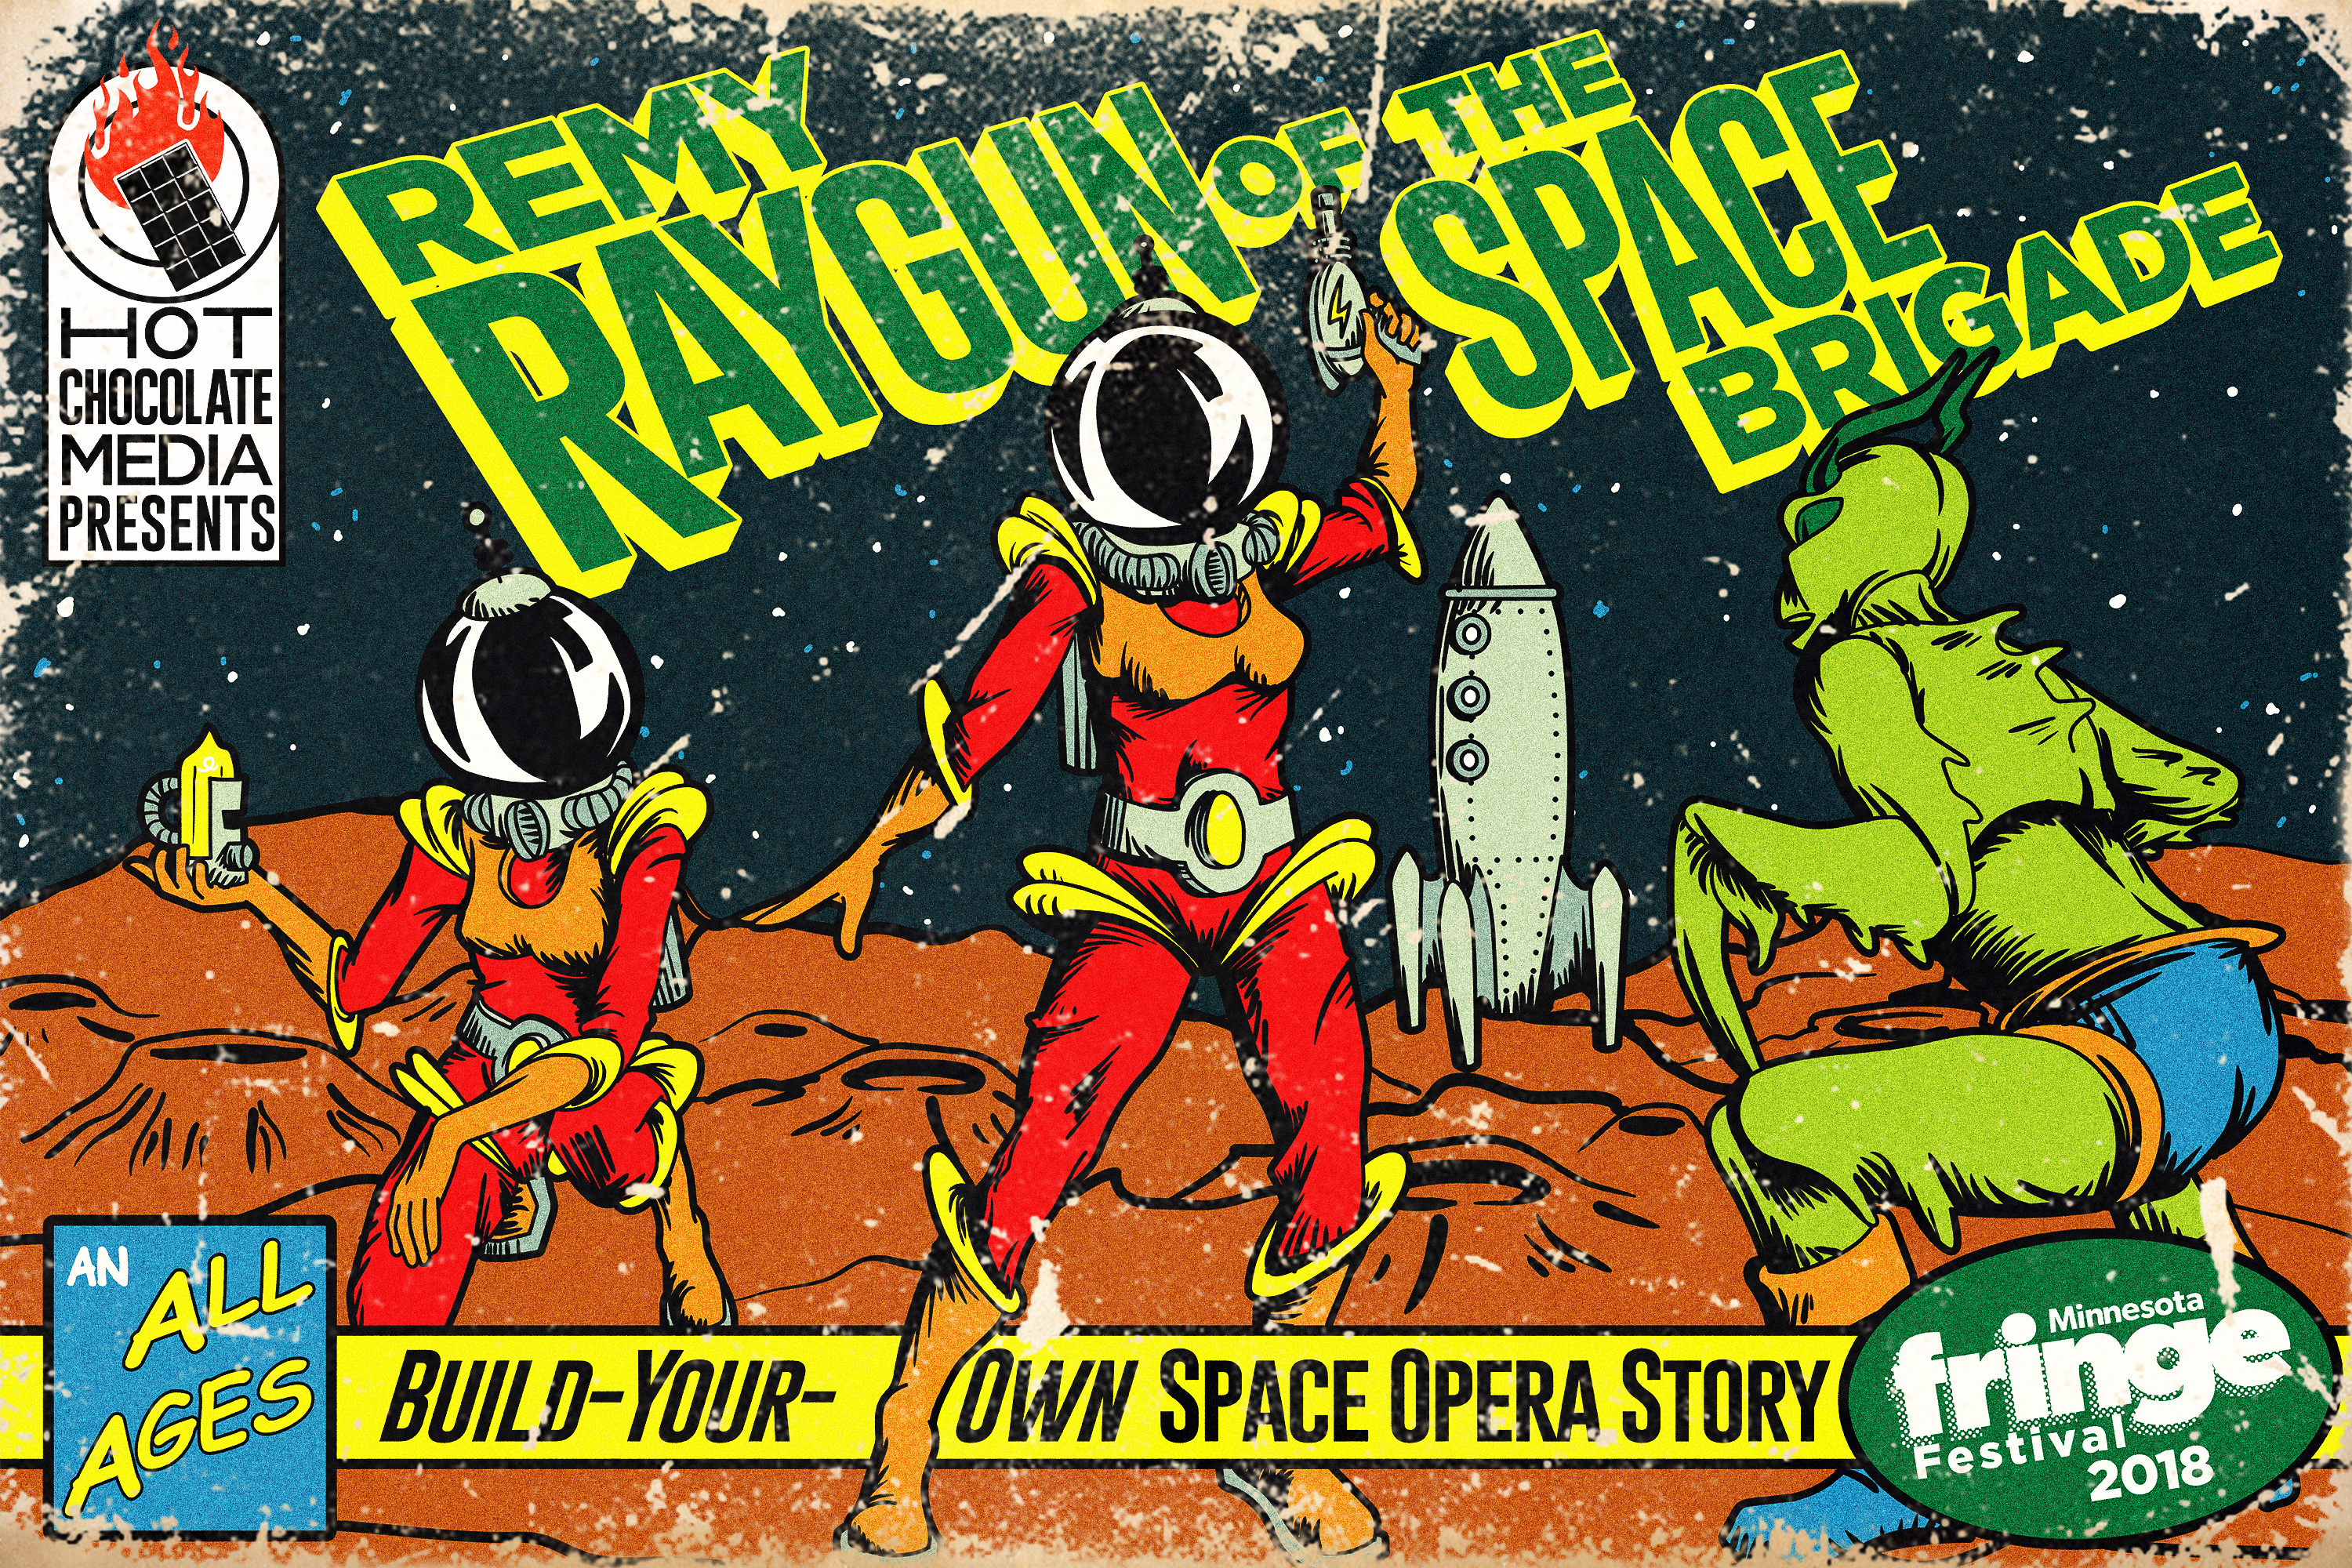 201808061900-367|0806|1900|5287271|Remy Raygun of the Space Brigade: A Build-Your-Own Space Opera|5366512